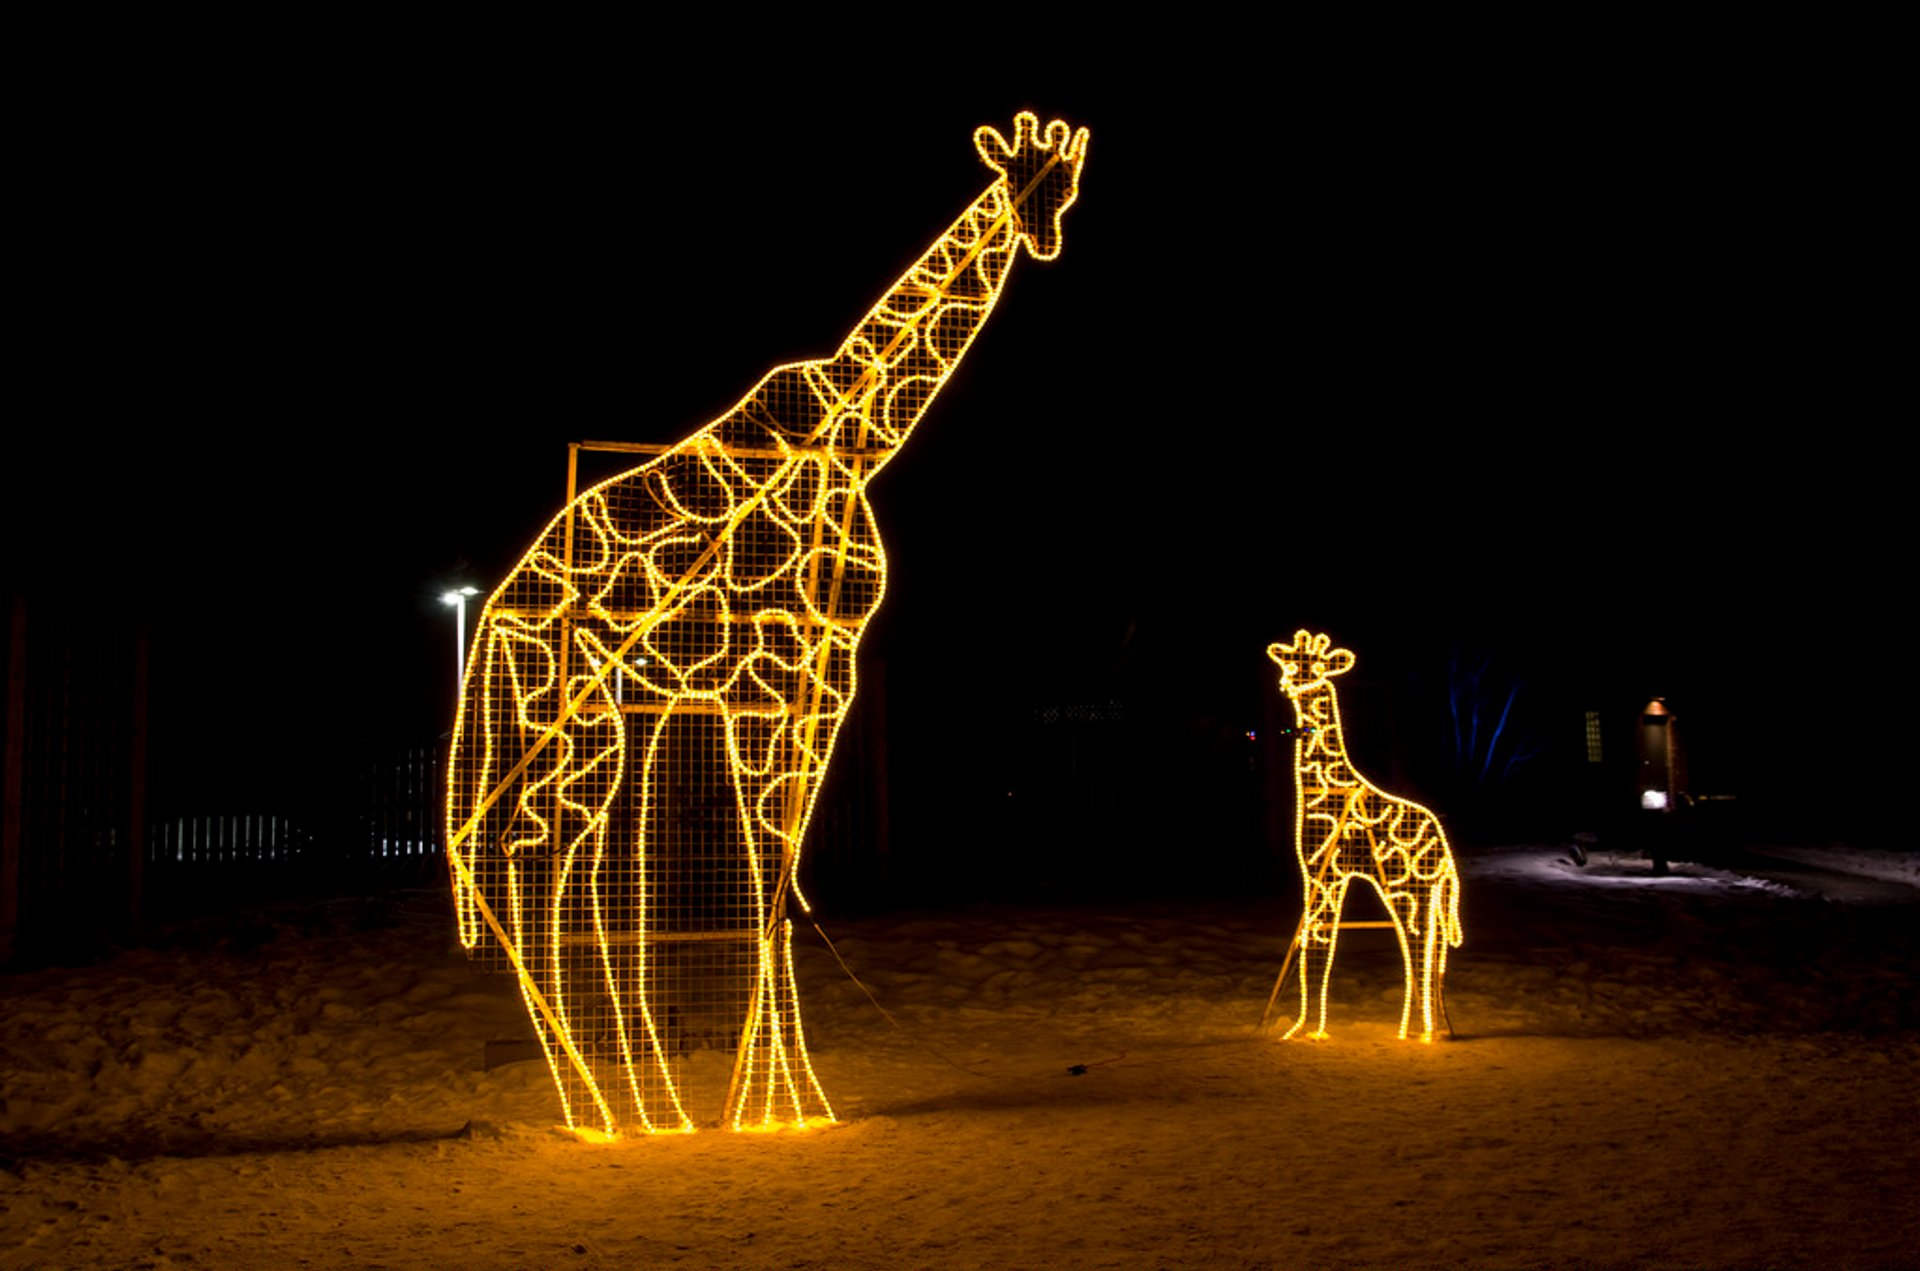 Zoo Lights in Calgary 2020 - Best Time